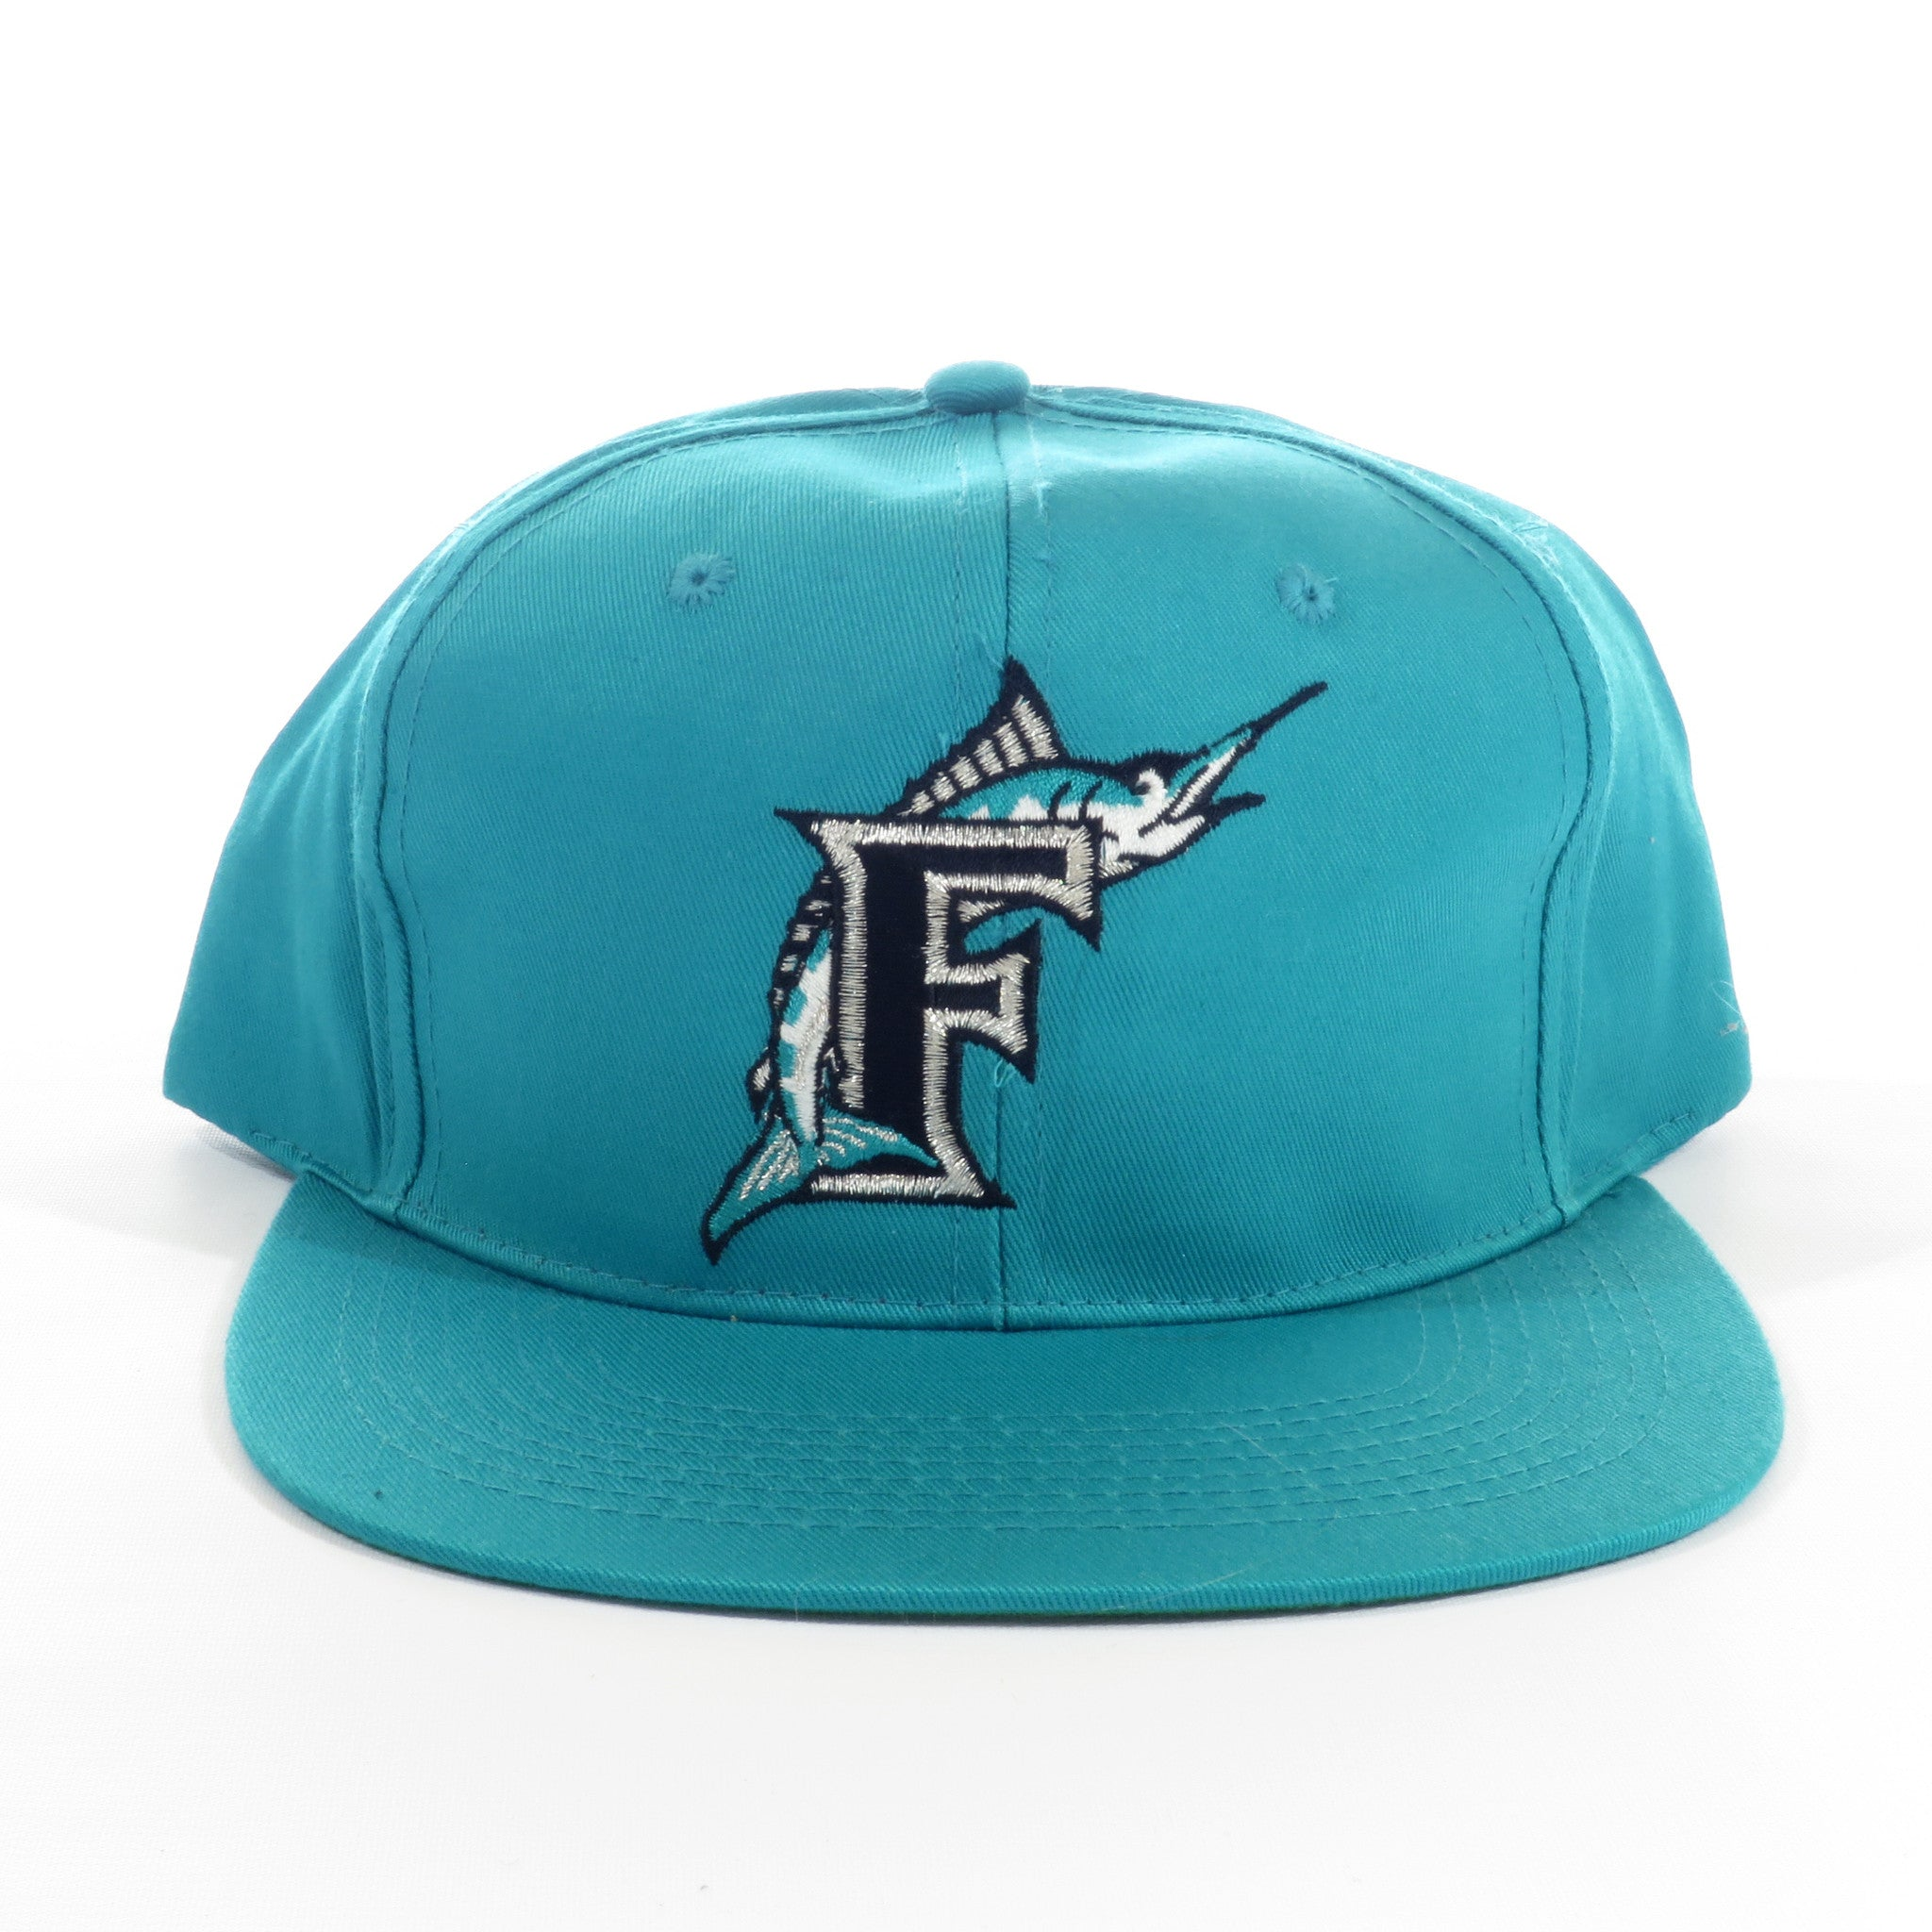 Florida Marlins Snapback Hat